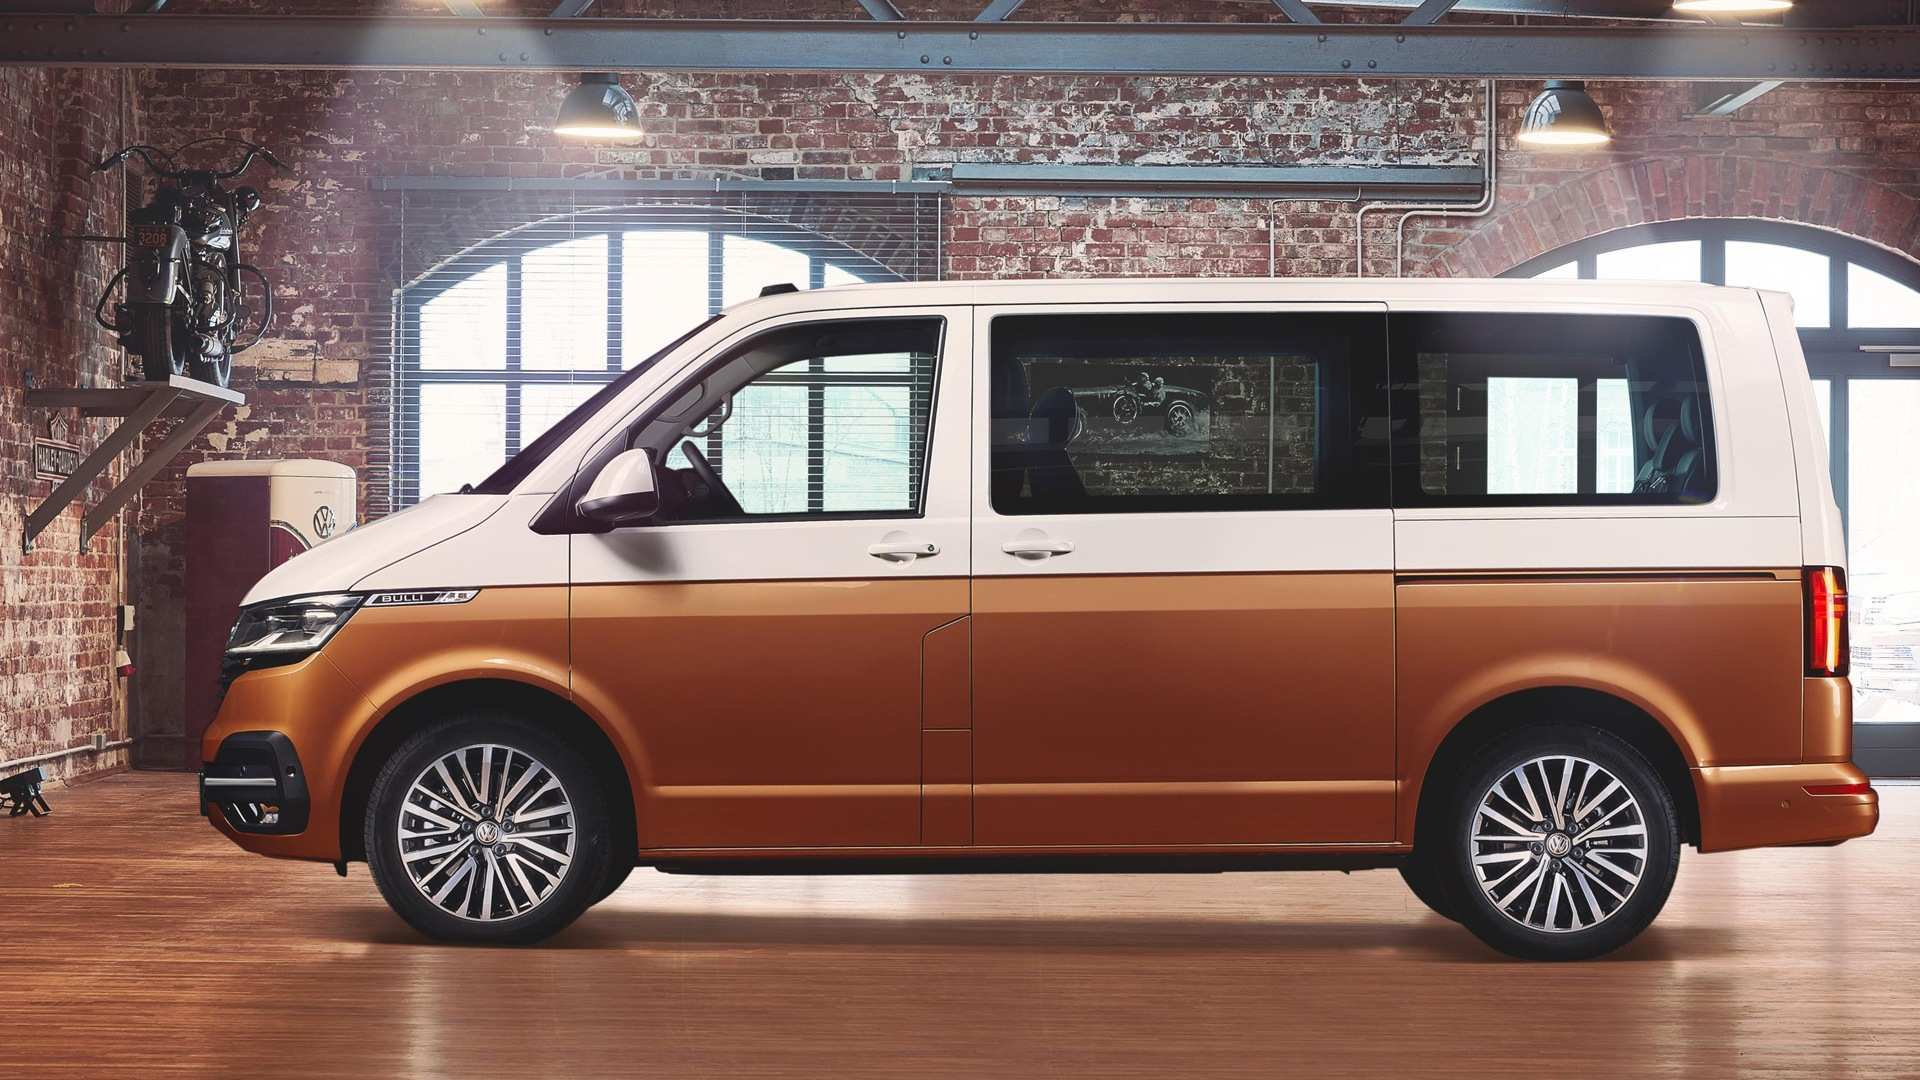 91 New 2020 VW Transporter Release Date And Concept